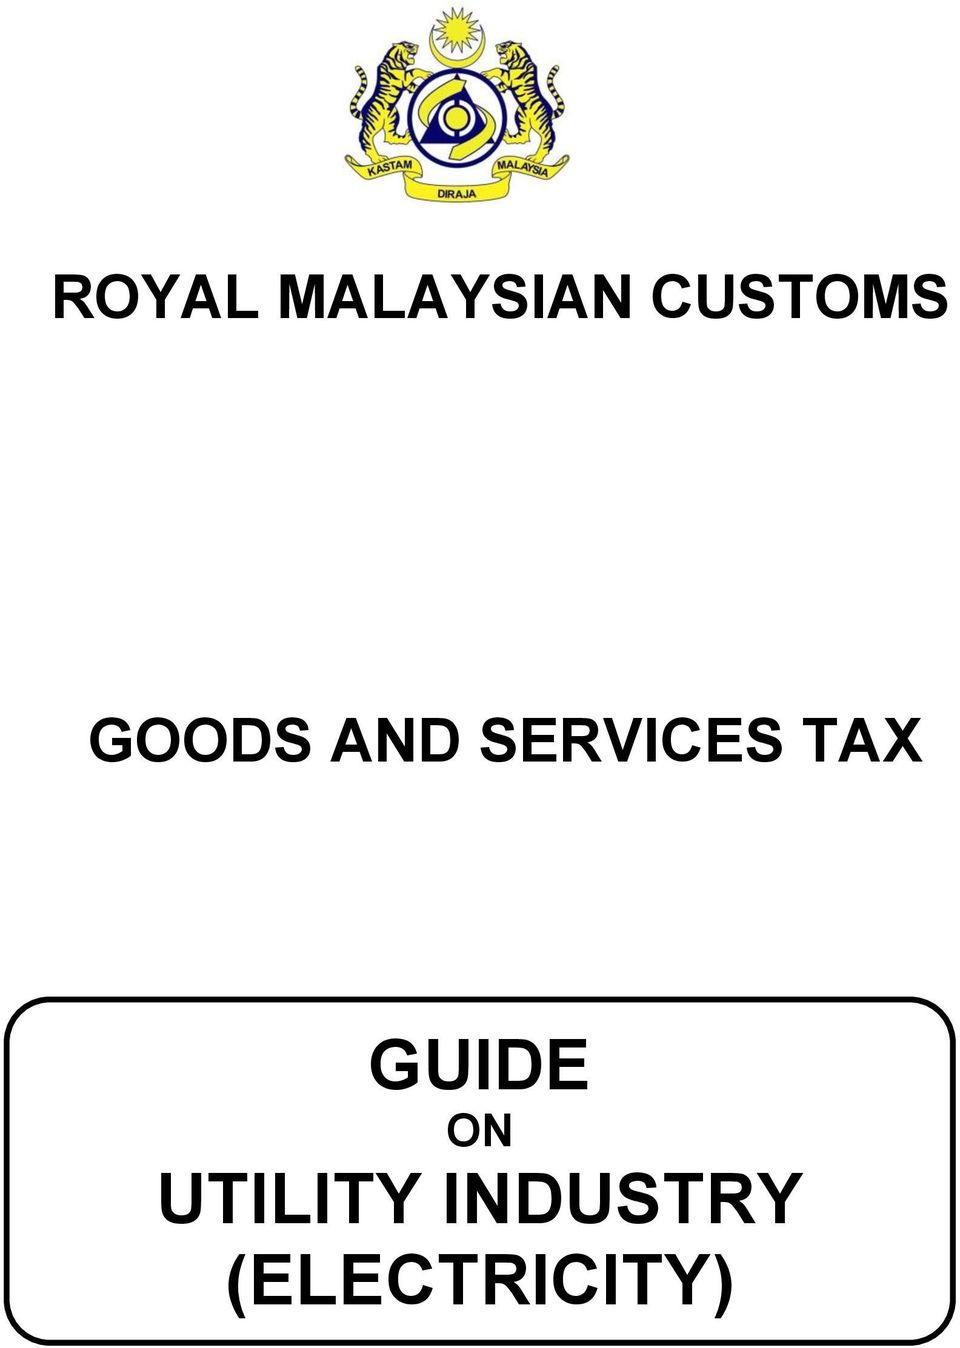 SERVICES TAX GUIDE ON